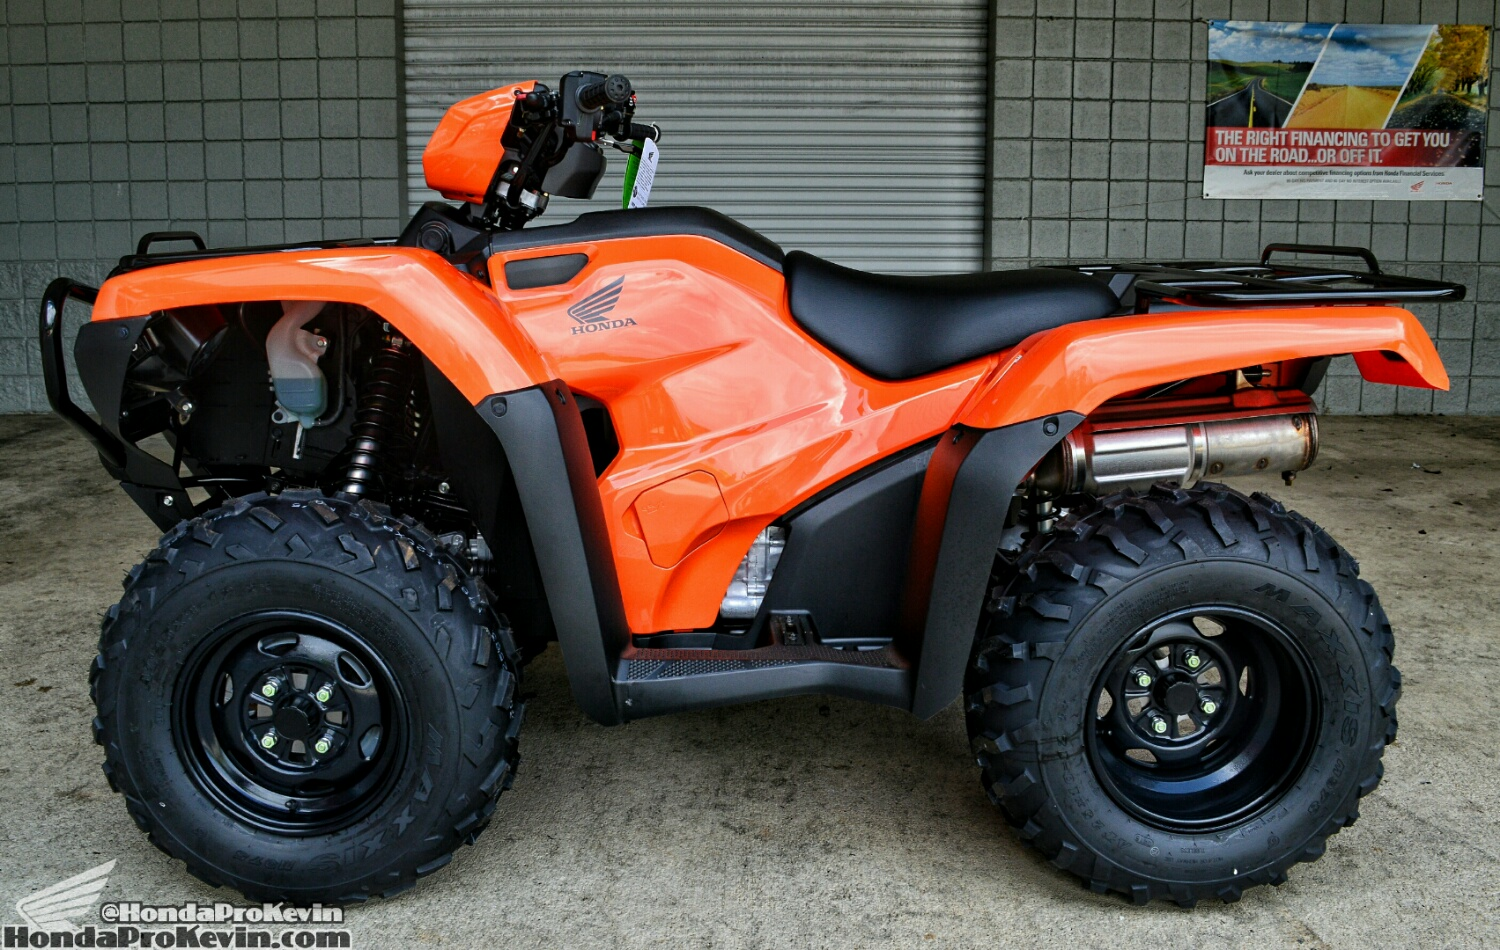 2017 Honda FourTrax Foreman 500 ATV Review / Specs - Horsepower / Price / Four Wheeler / 4x4 Quad - TRX500